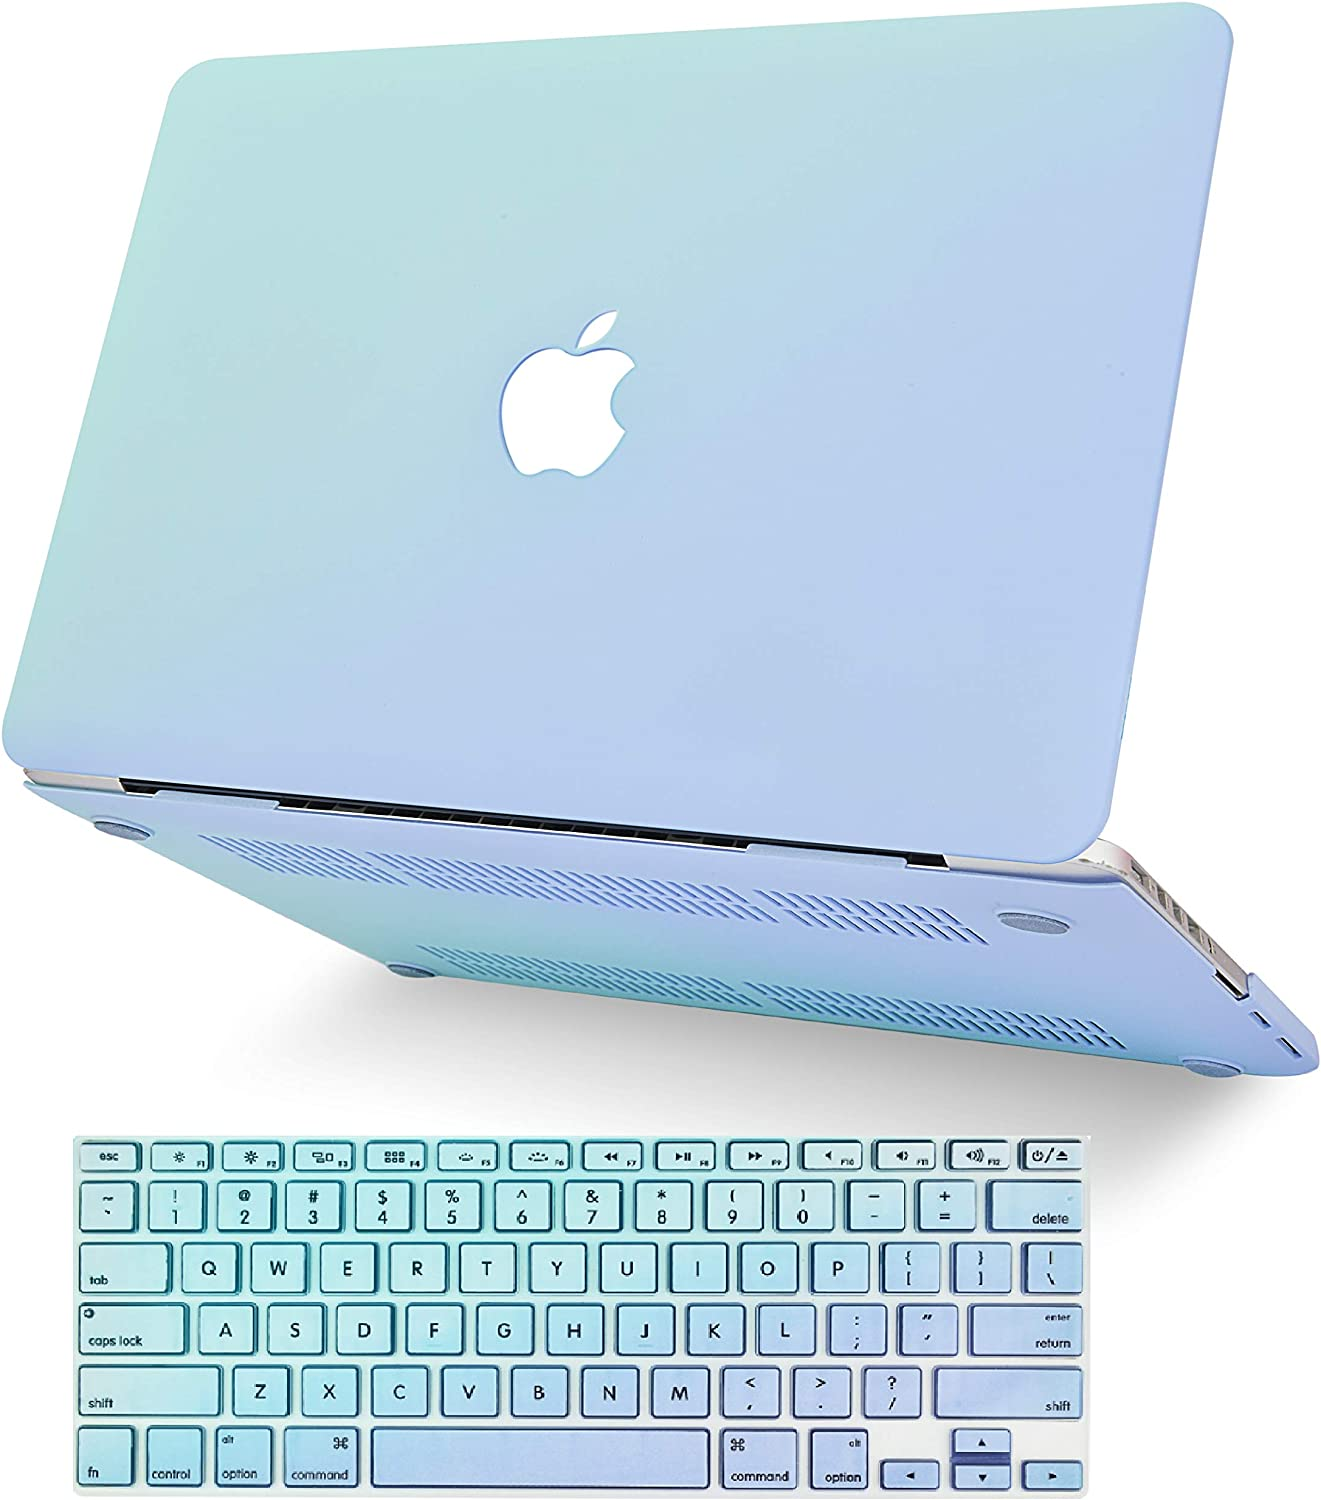 "KECC Laptop Case for MacBook Air 13"" w/Keyboard Cover Plastic Hard Shell Case A1466/A1369 2 in 1 Bundle (Green Serenity Blue)"